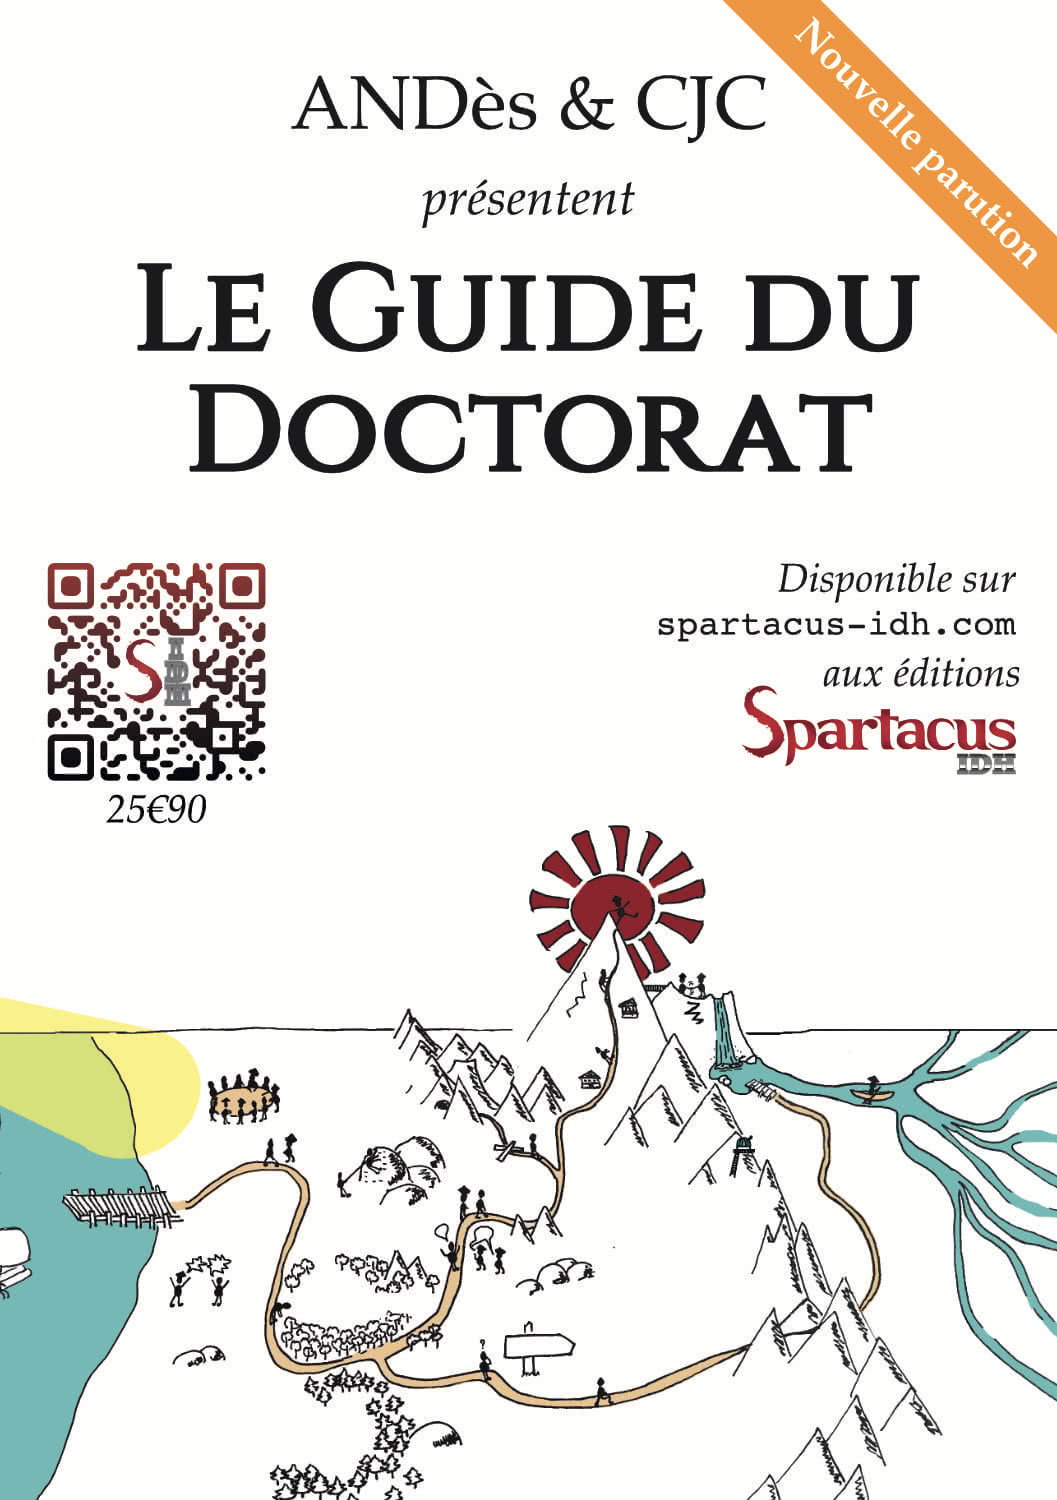 Flyer du Guide du Doctorat